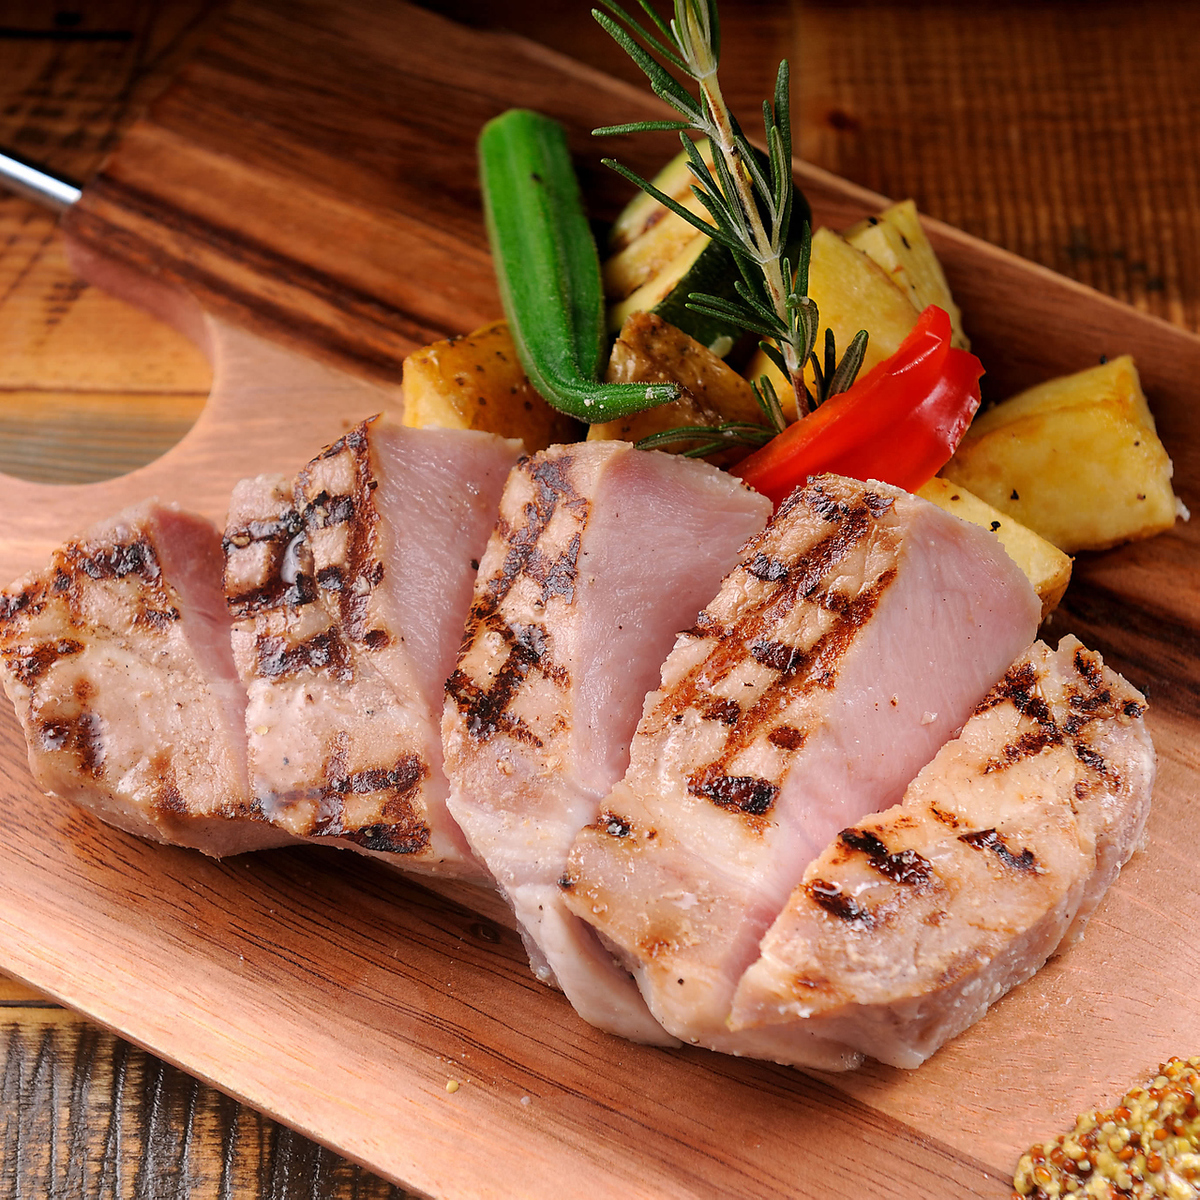 Soft GRILL of thick cut pork loin